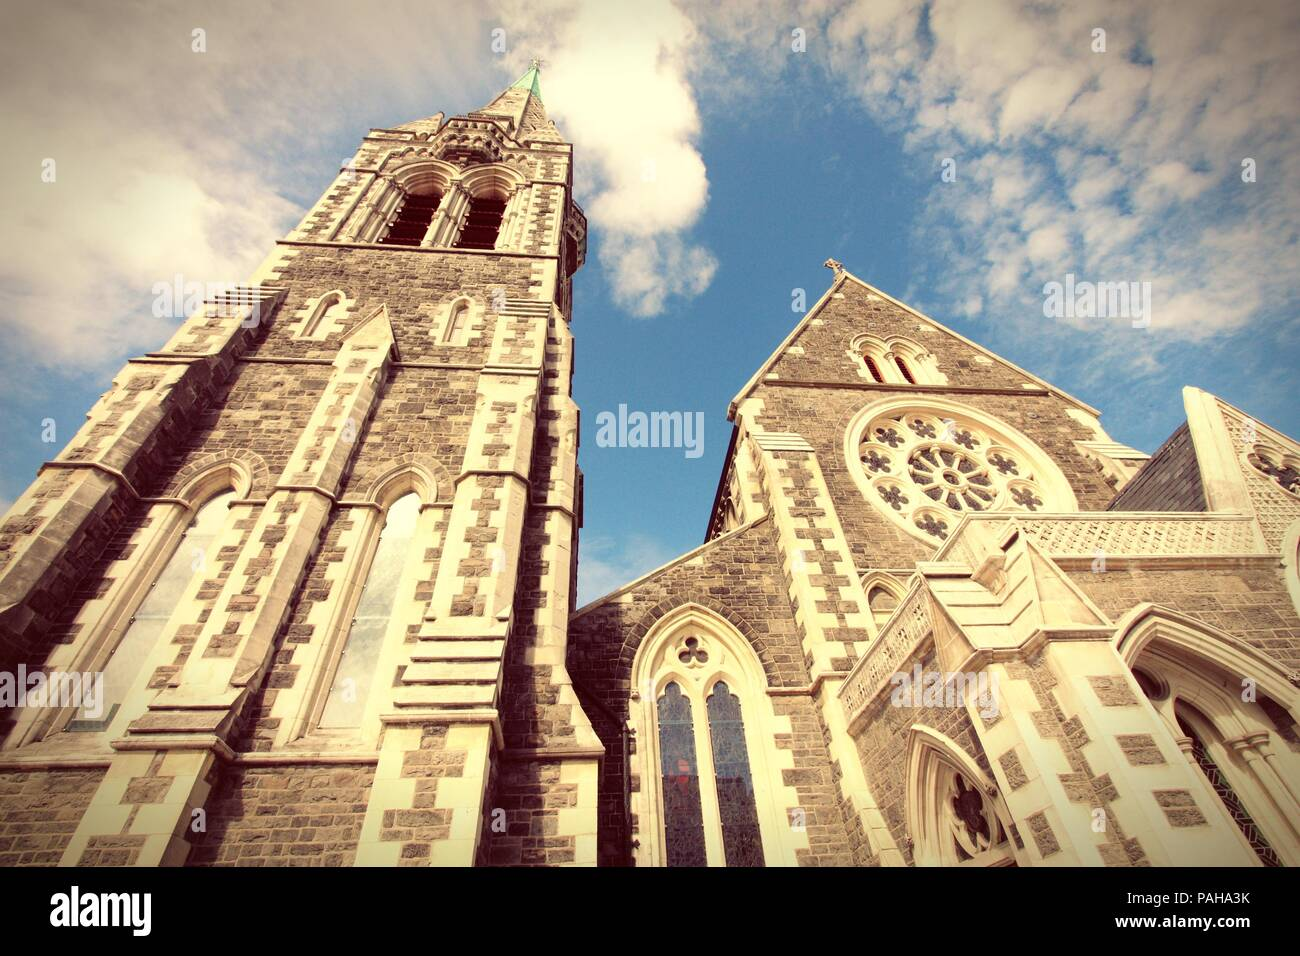 ChristChurch Anglican cathedral in Christchurch, Canterbury, New Zealand. Cross processed retro color style. - Stock Image